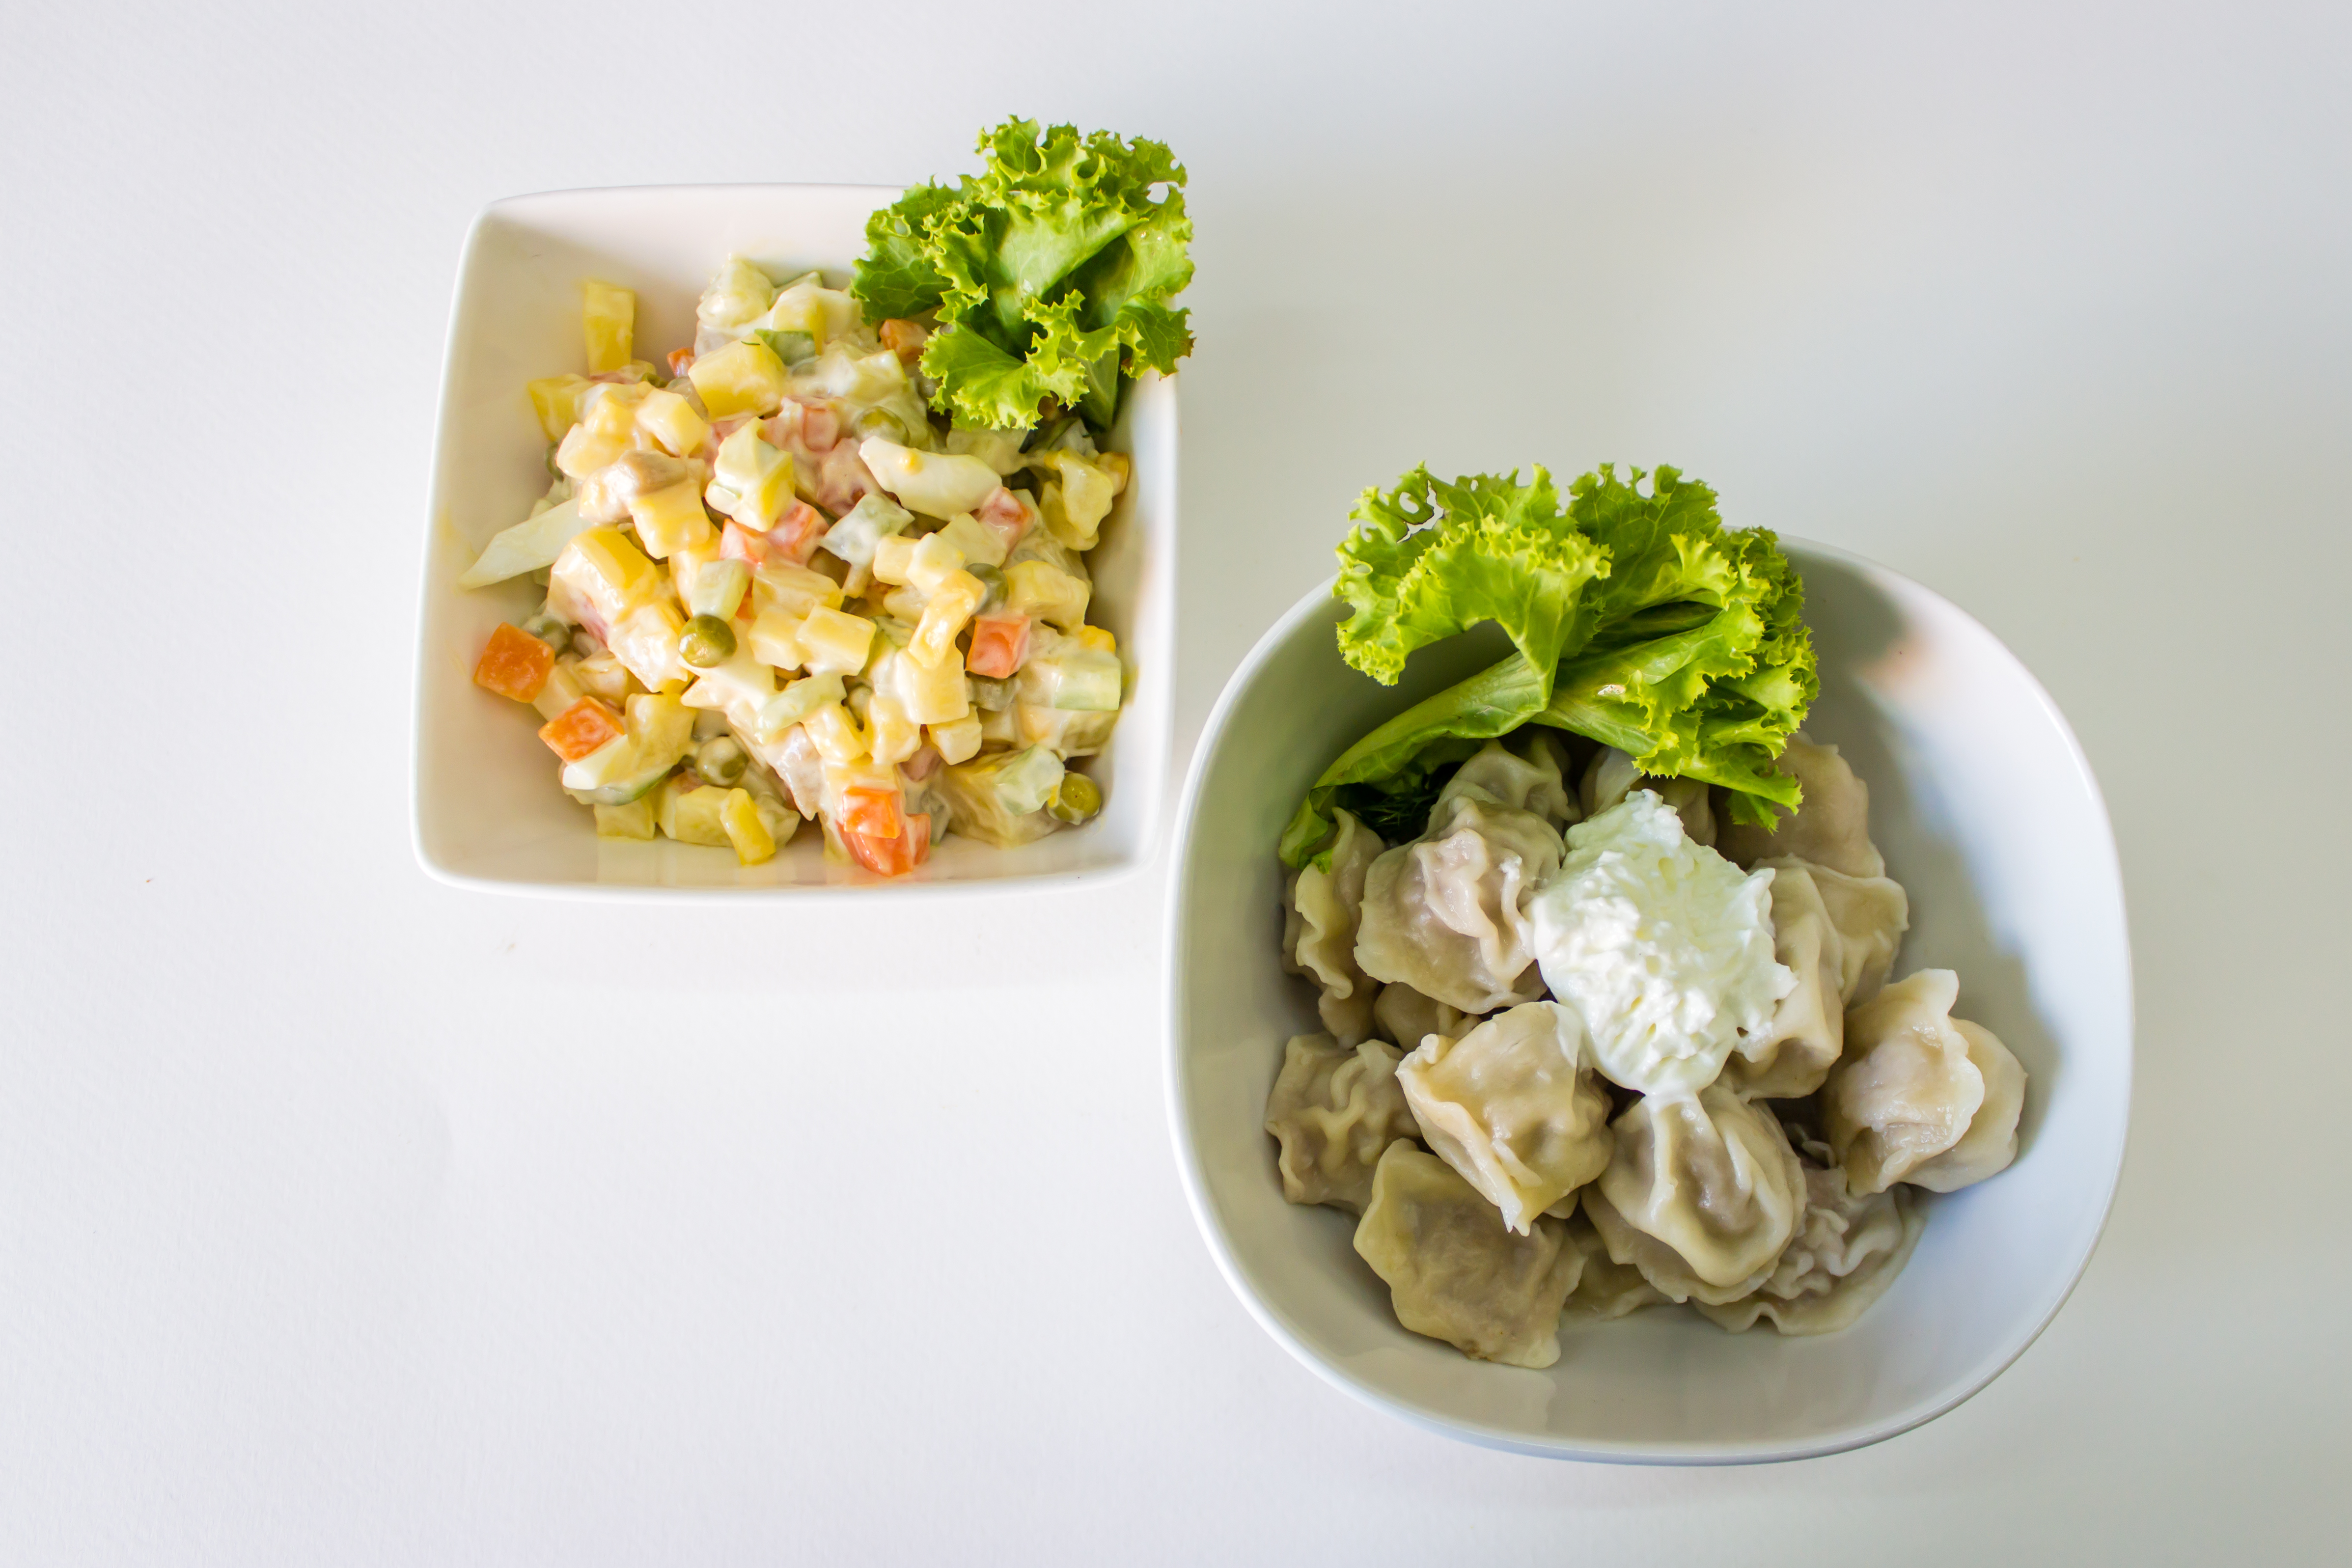 Boiled dumplings (Pelmeni) and Russian salad